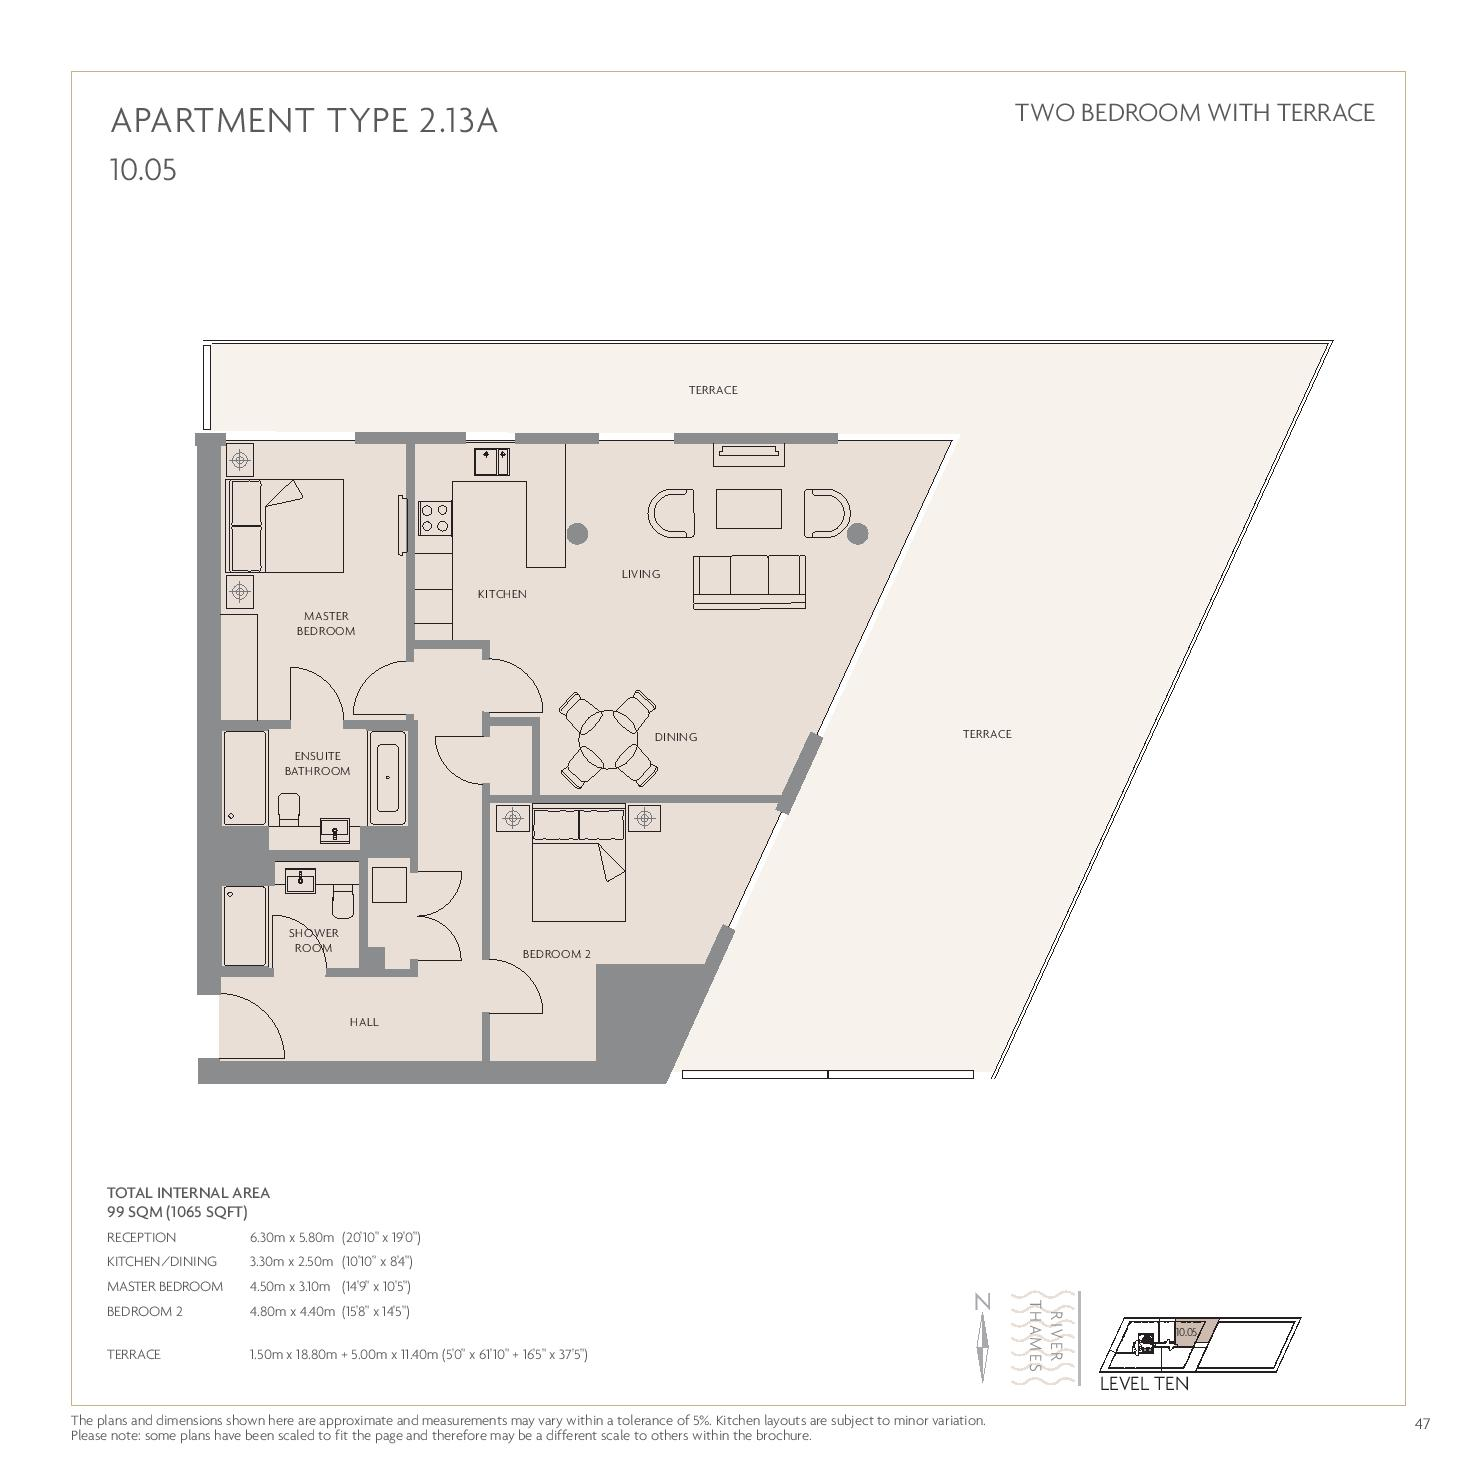 Wyndham Apartments: 2 Bedroom Property For Sale In Wyndham Apartments, 60